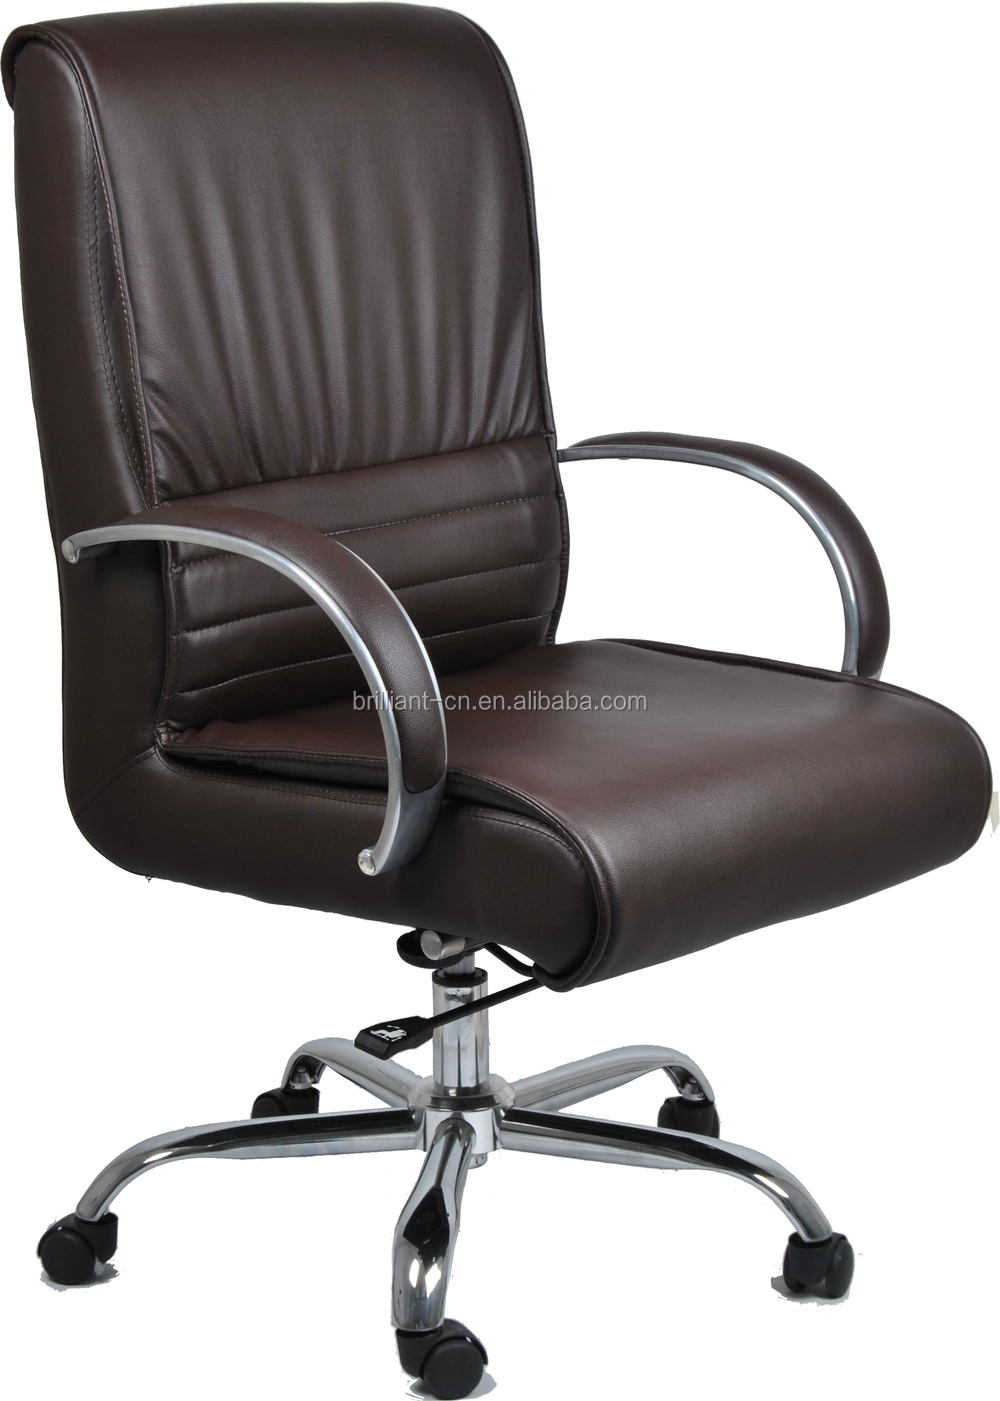 Bureau Jeu Viano Inclinable D'ordinateur Mercedes Limou De Chaise Pliante Ergonomique Inclinables Sièges Capitaine Sprinter Luxe OPkuiTXZ